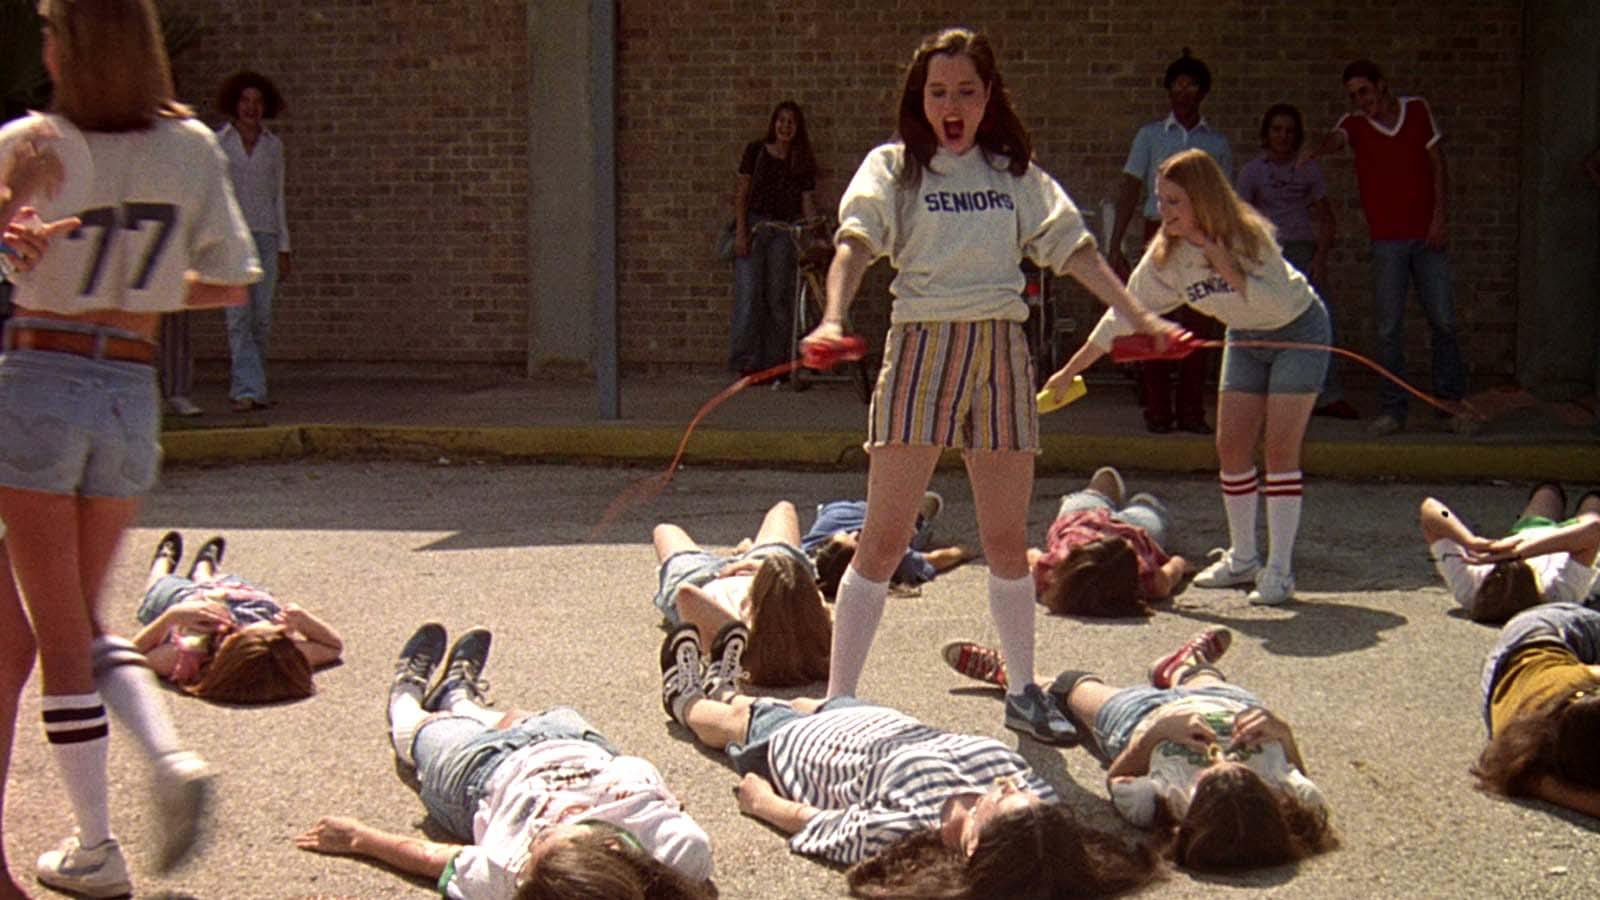 Buy PRE-ORDER Dazed and Confused (Blu-ray)